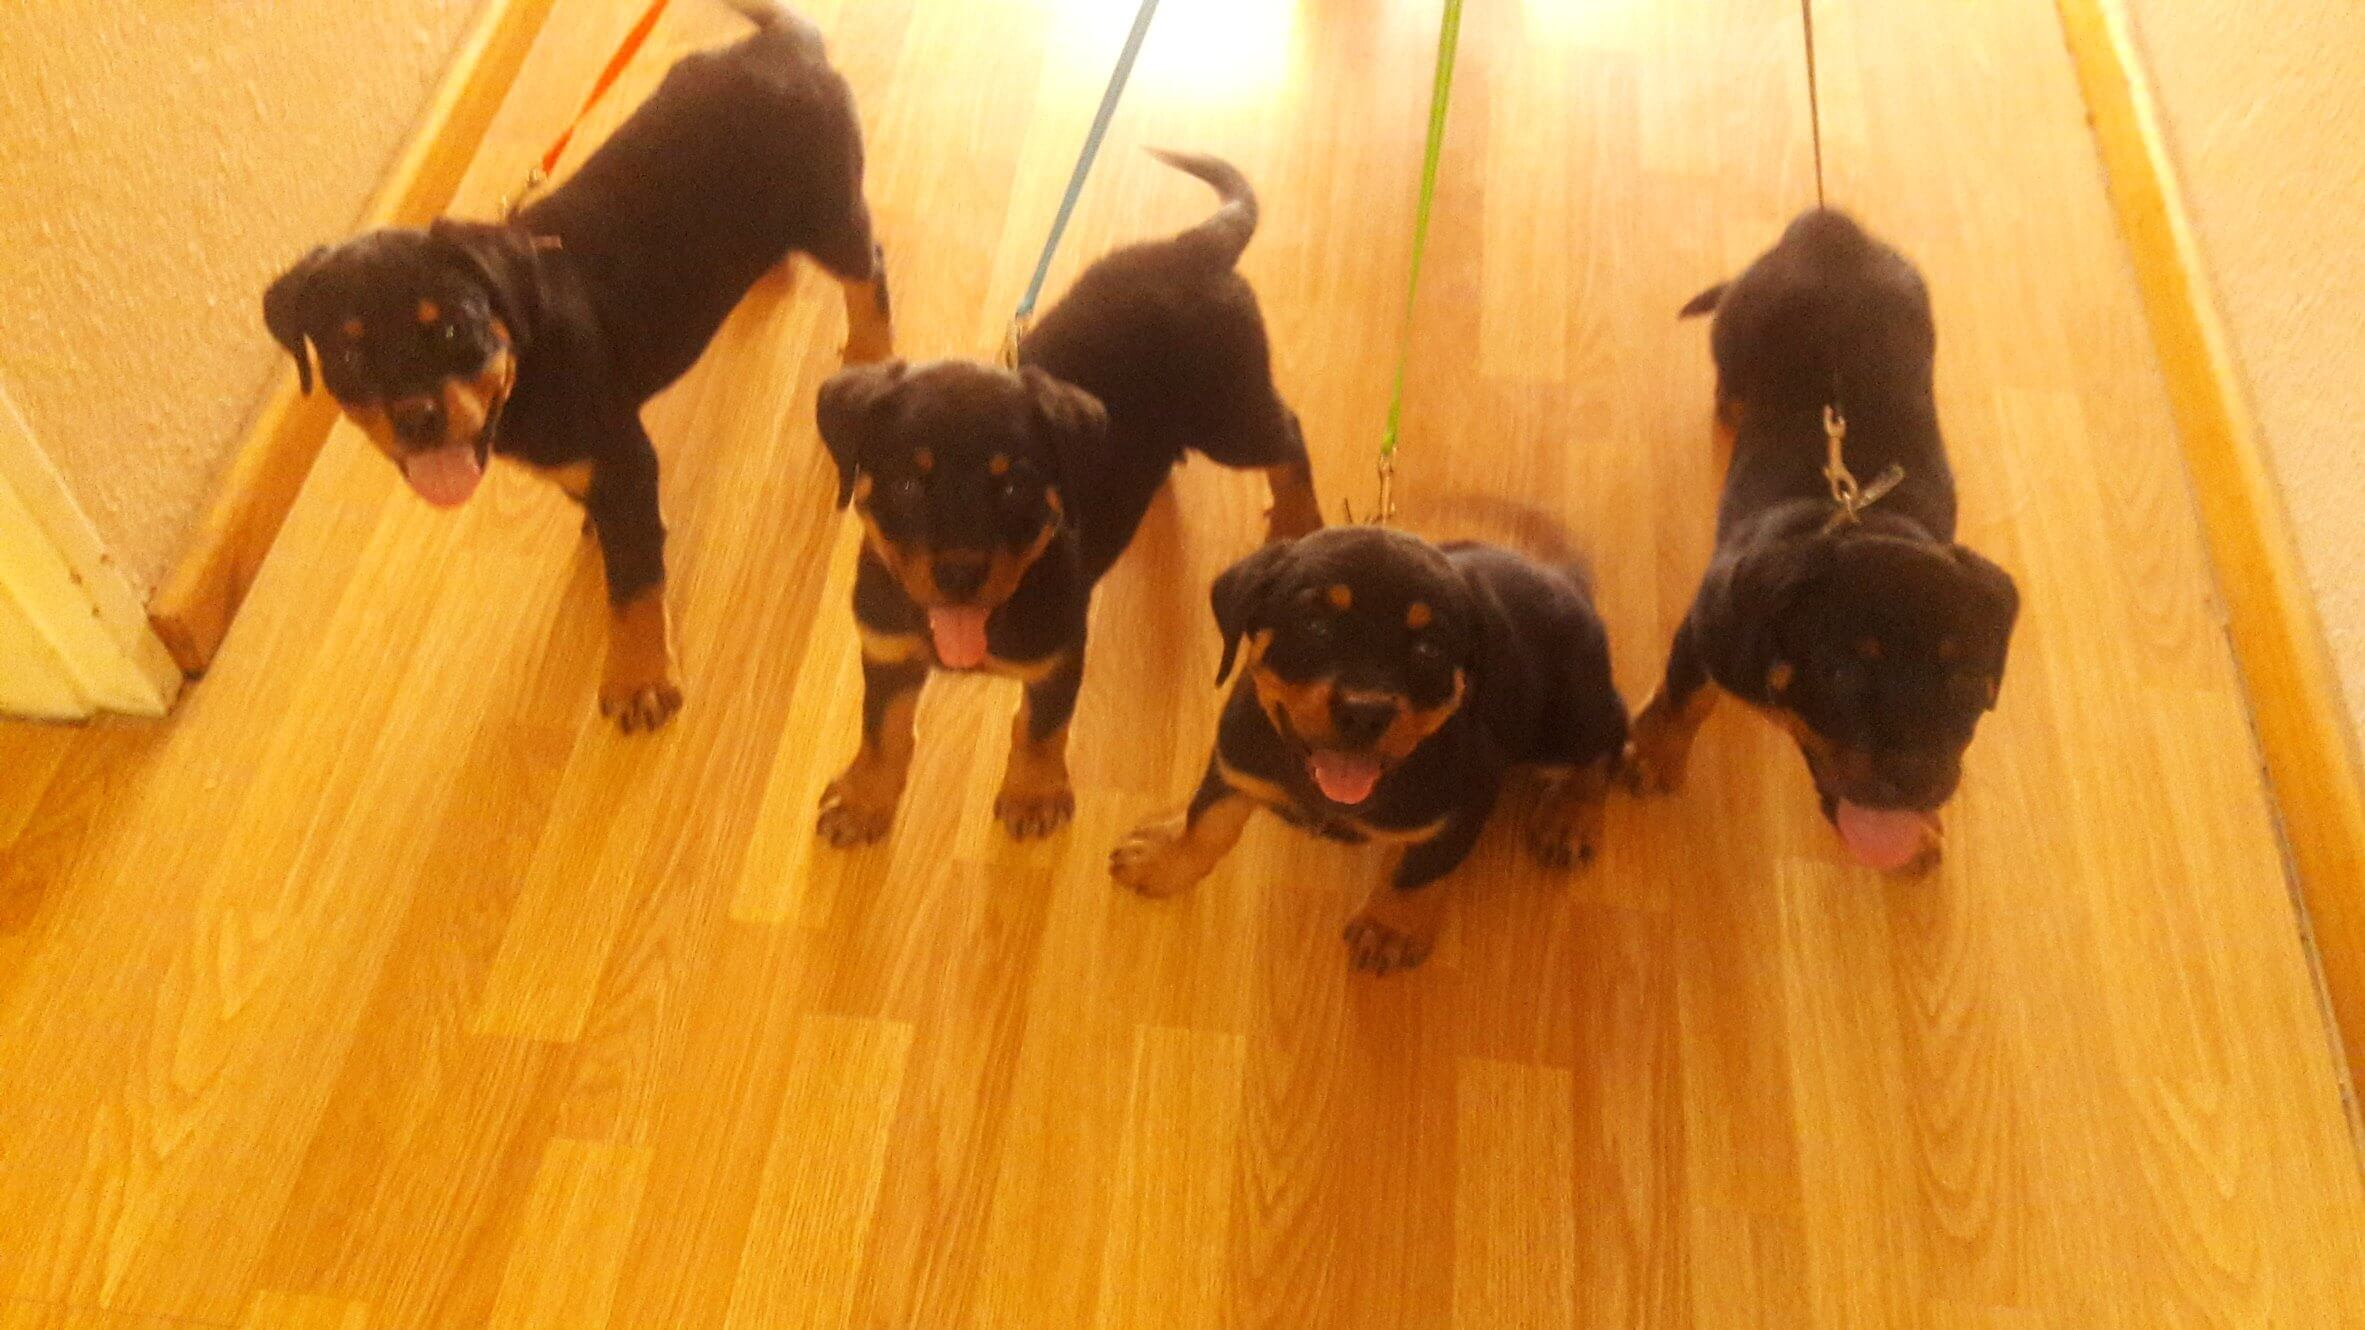 Rottweiler Puppies for Sale in Cape Town by Kobus Visagie